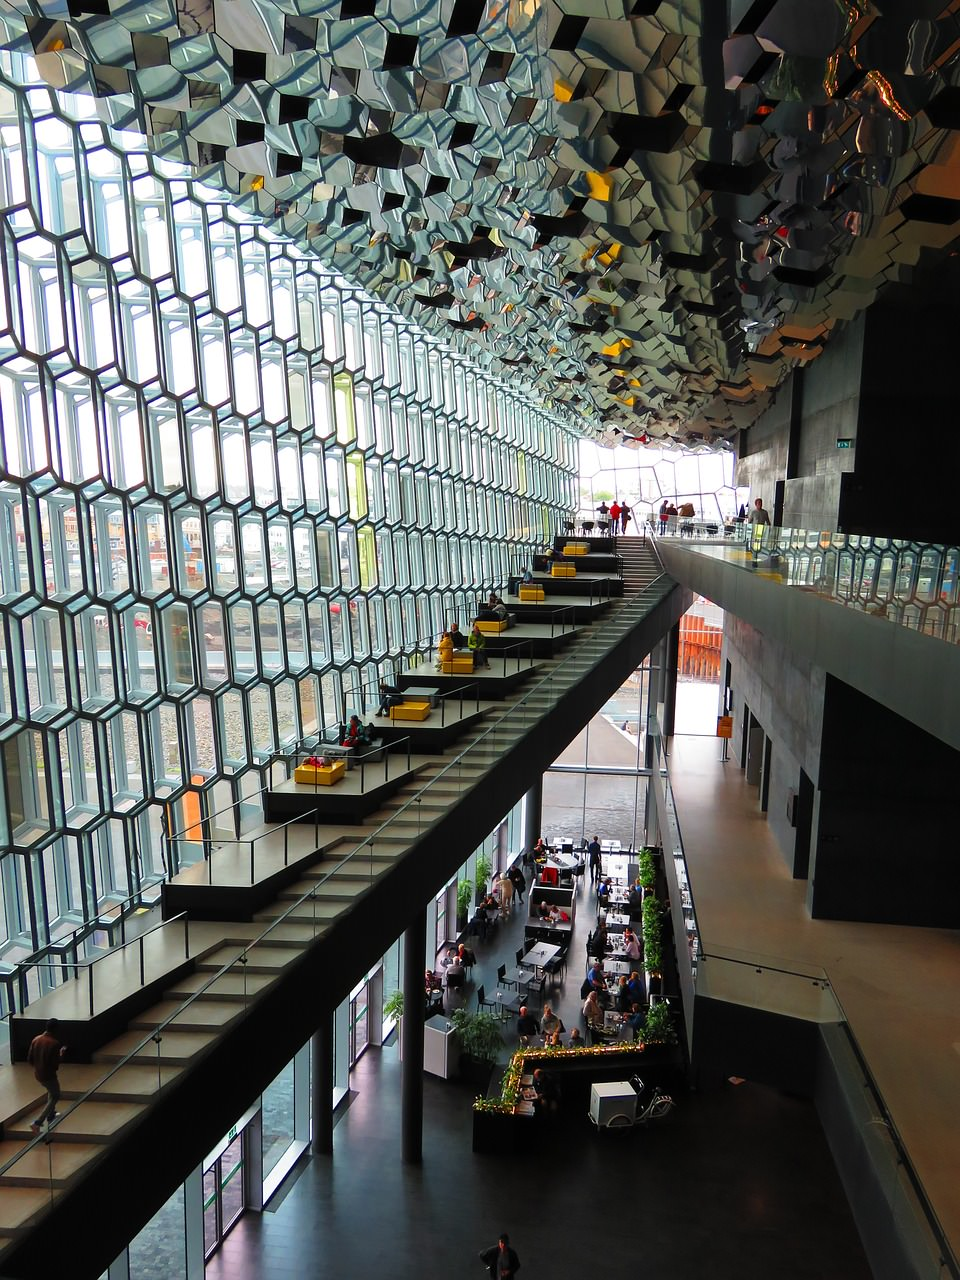 Inside of the Harpa Philharmony Iceland with modern glass architecture